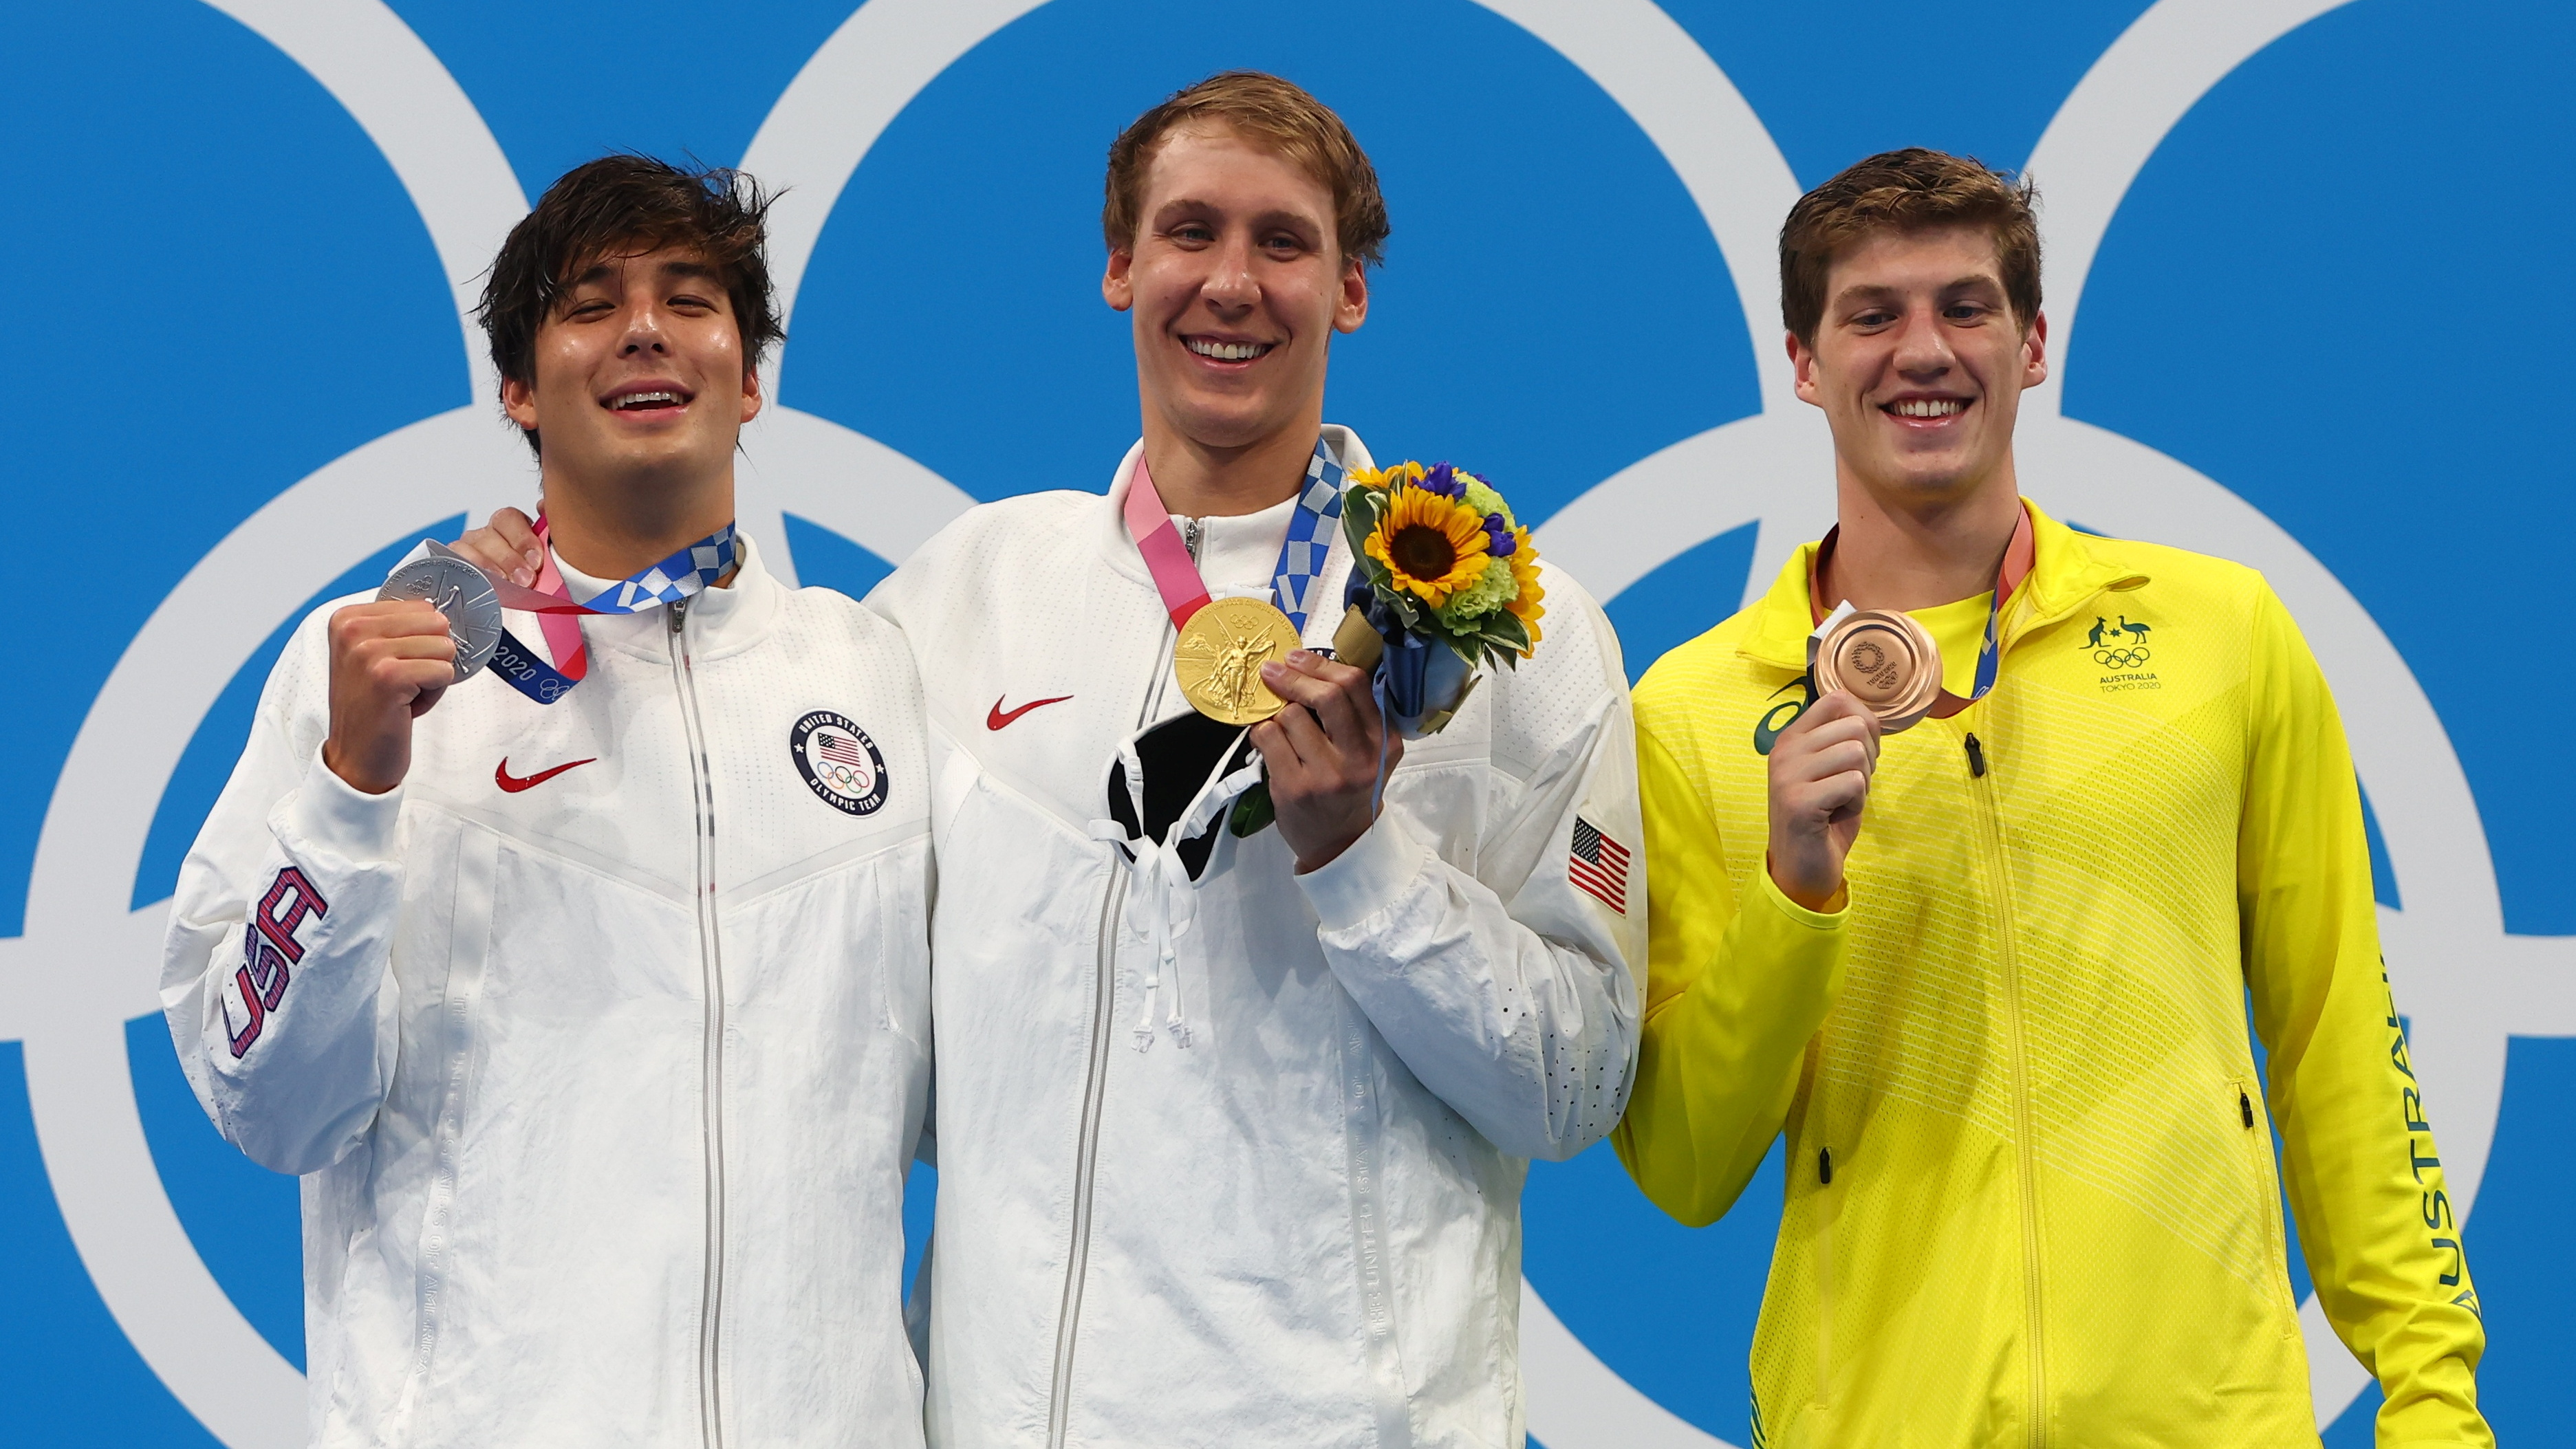 Tokyo 2020 Olympics - Swimming - Men's 400m Individual Medley - Medal Ceremony - Tokyo Aquatics Centre - Tokyo, Japan - July 25, 2021. Gold medalist Chase Kalisz of the United States, silver medalist Jay Litherland of the United States and bronze medalist Brendon Smith of Australia pose on the podium REUTERS/Kai Pfaffenbach